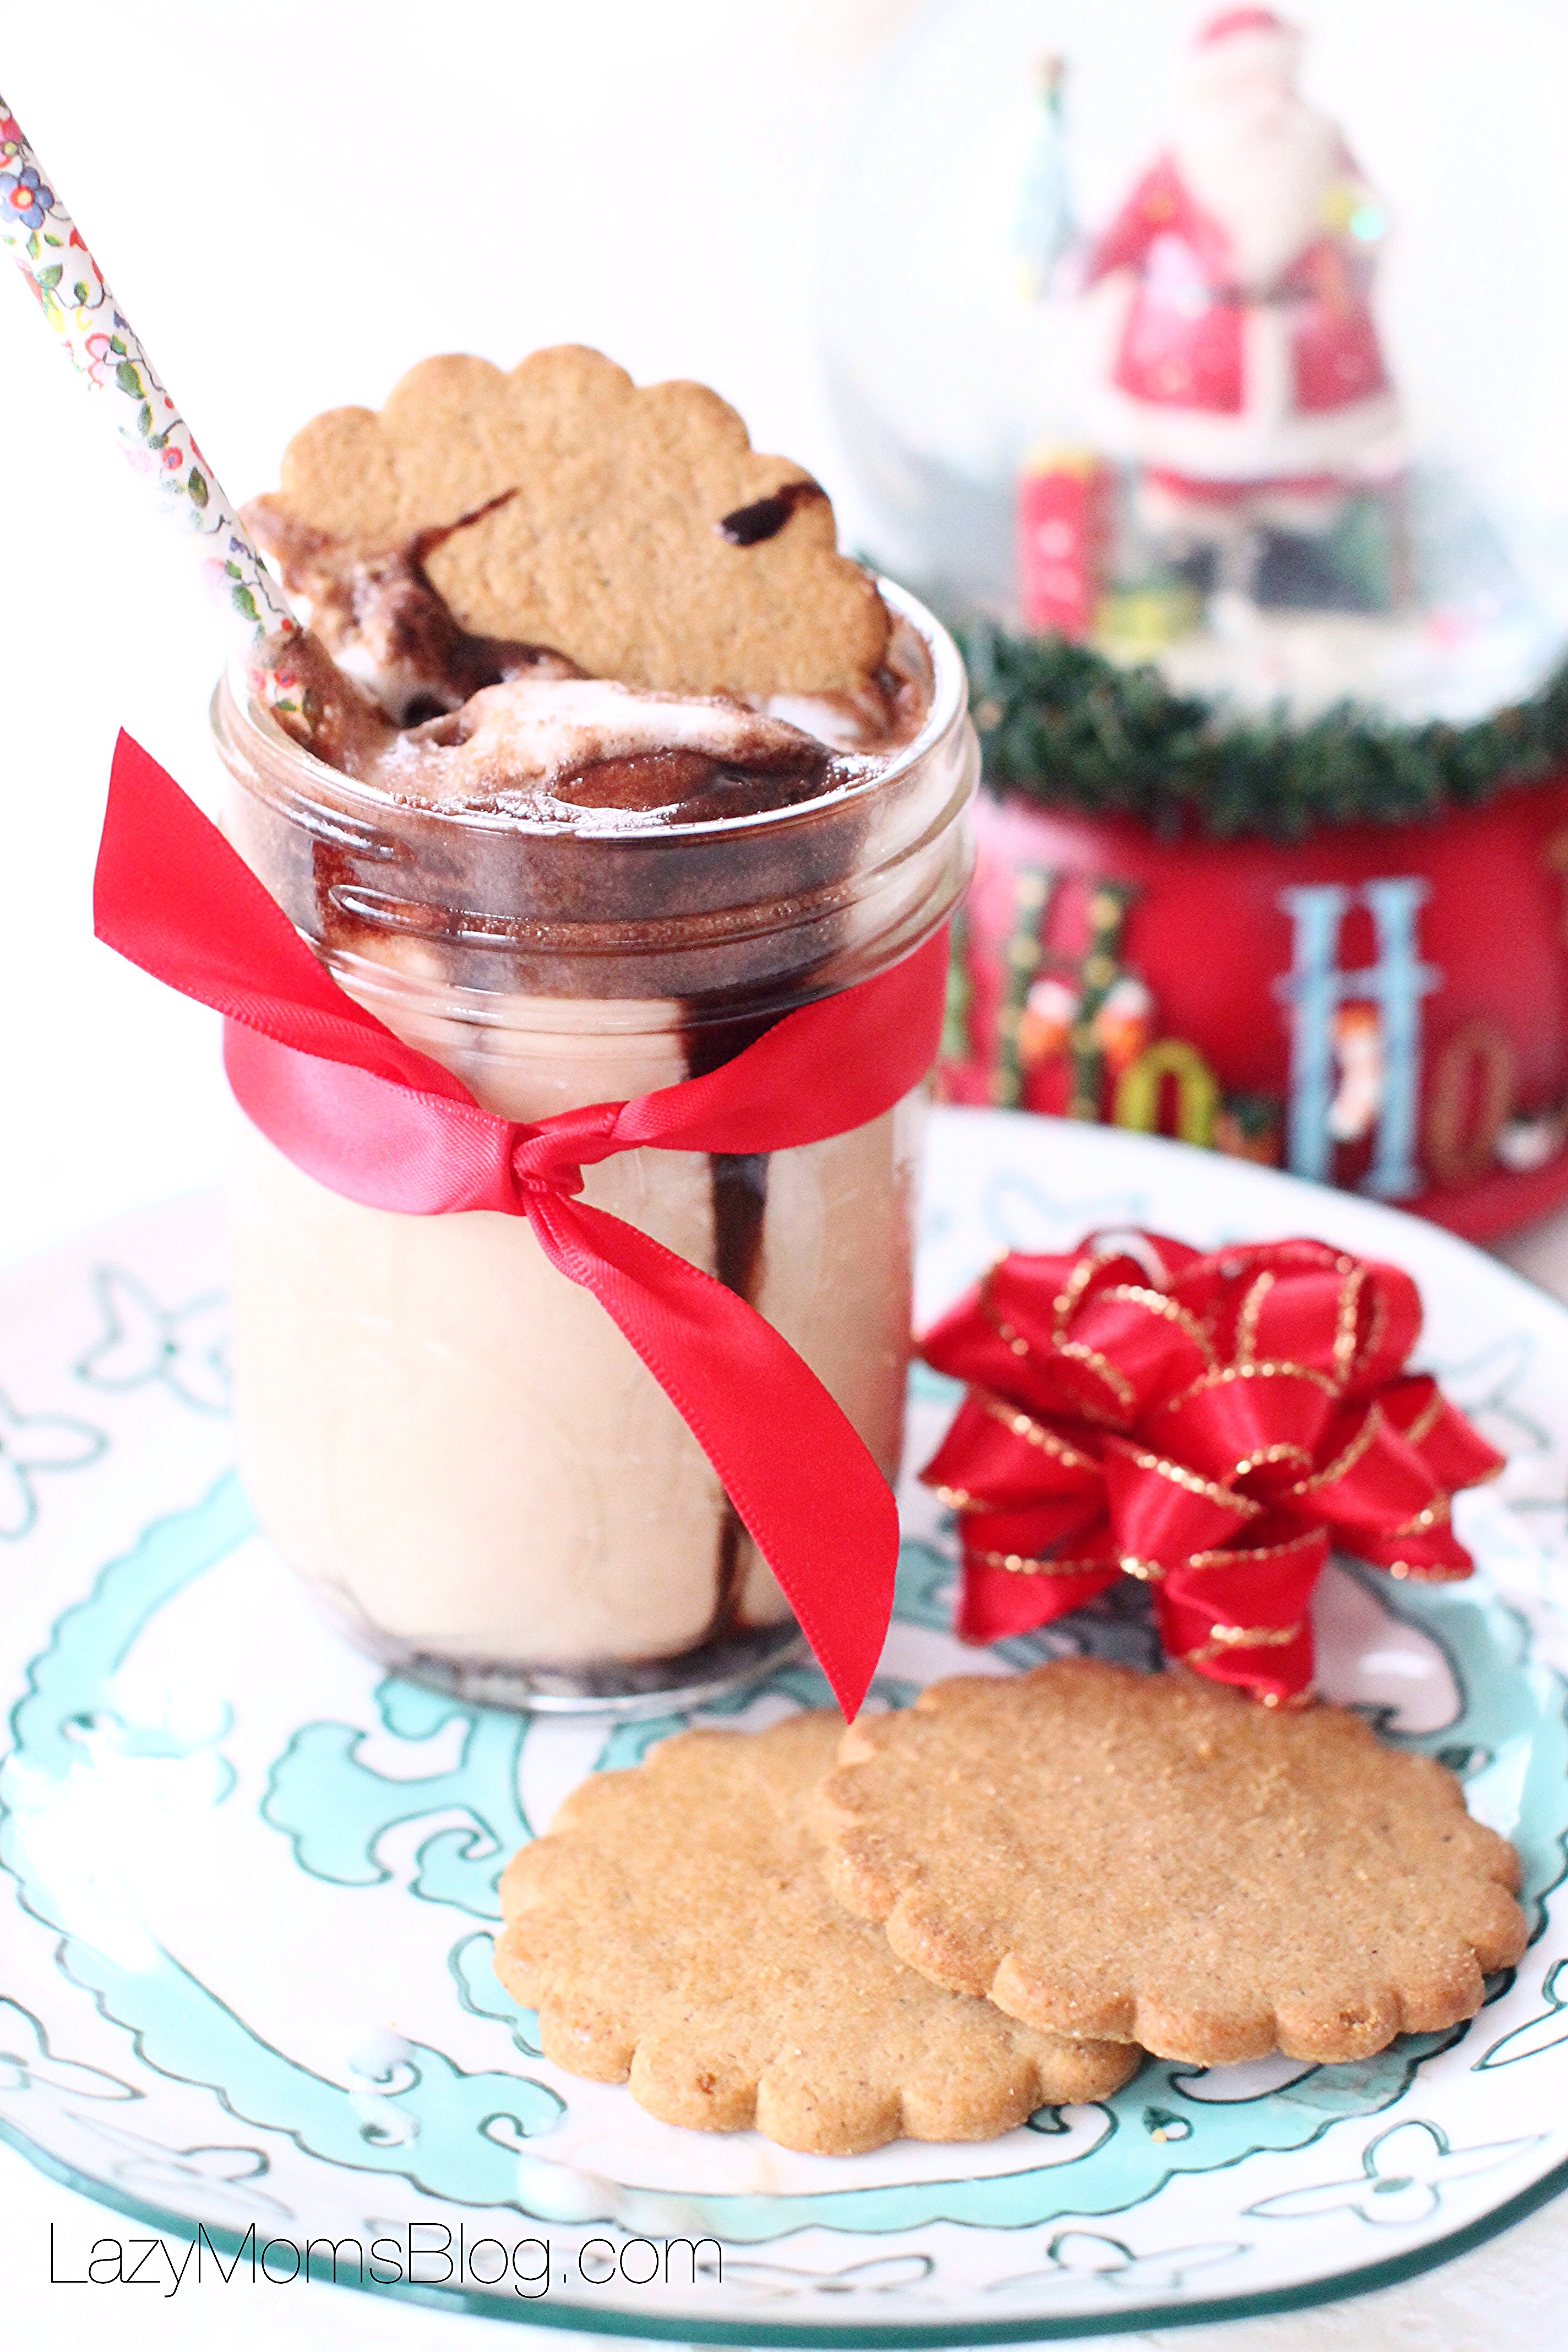 This chocolate peanut butter and gingerbread Christmas shake is a perfect treat!